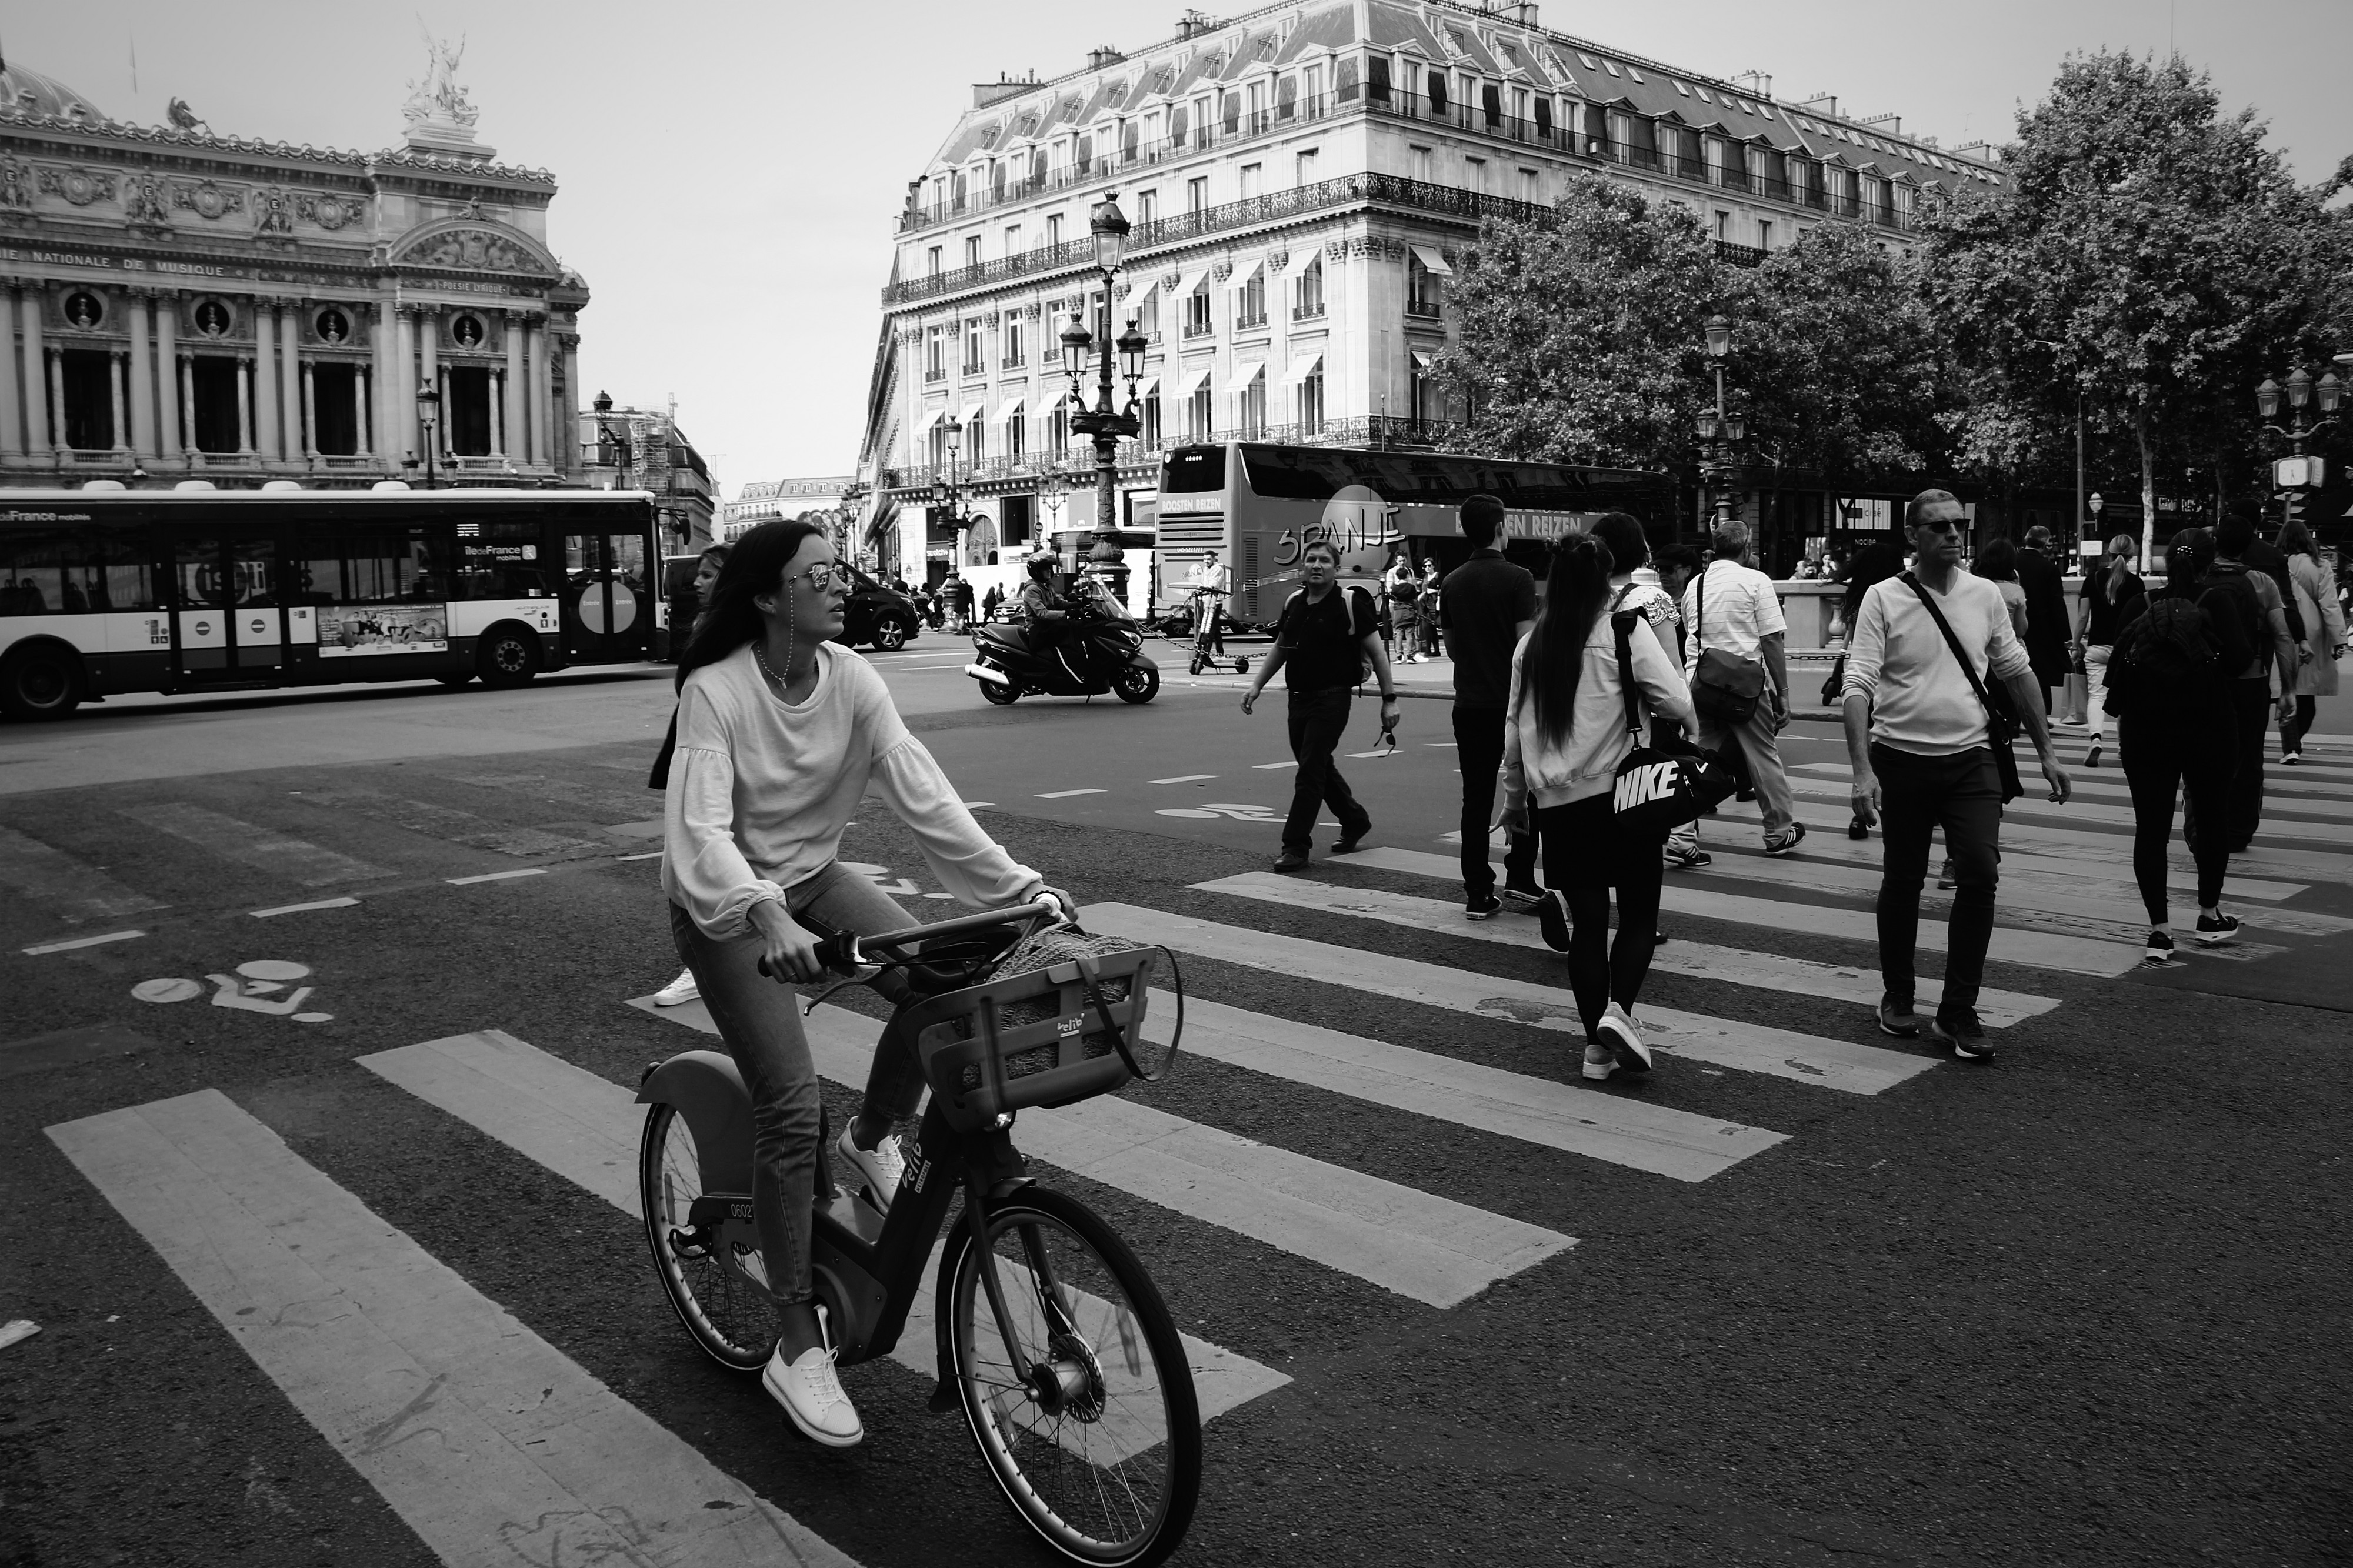 Cyclist on a level crossing with people - Photo by Steven Lasry on Unsplash